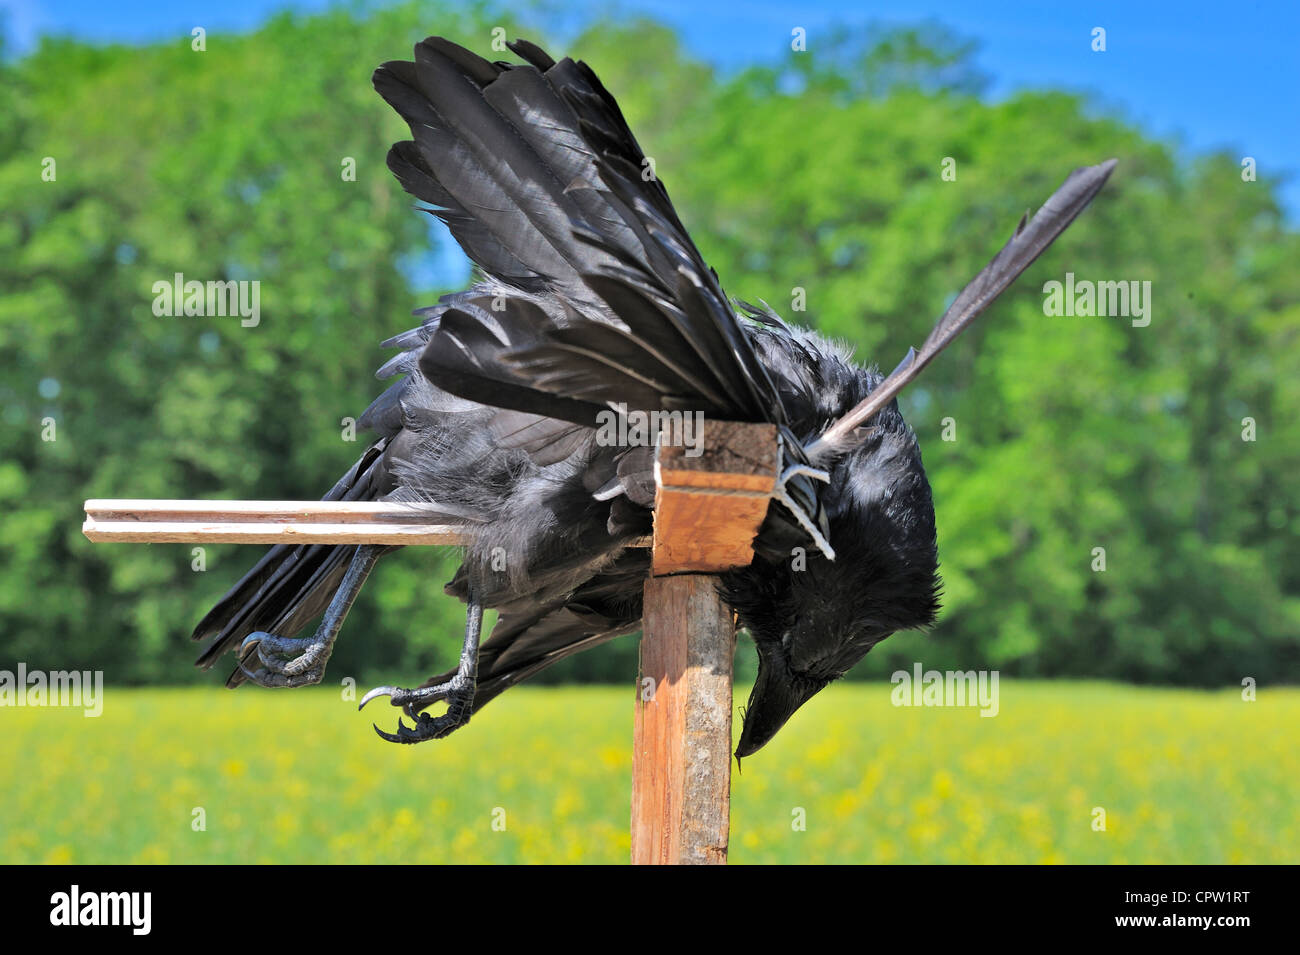 A dead crow tied to a stake in a Swiss farmer's field, to scare off the other crows - Stock Image